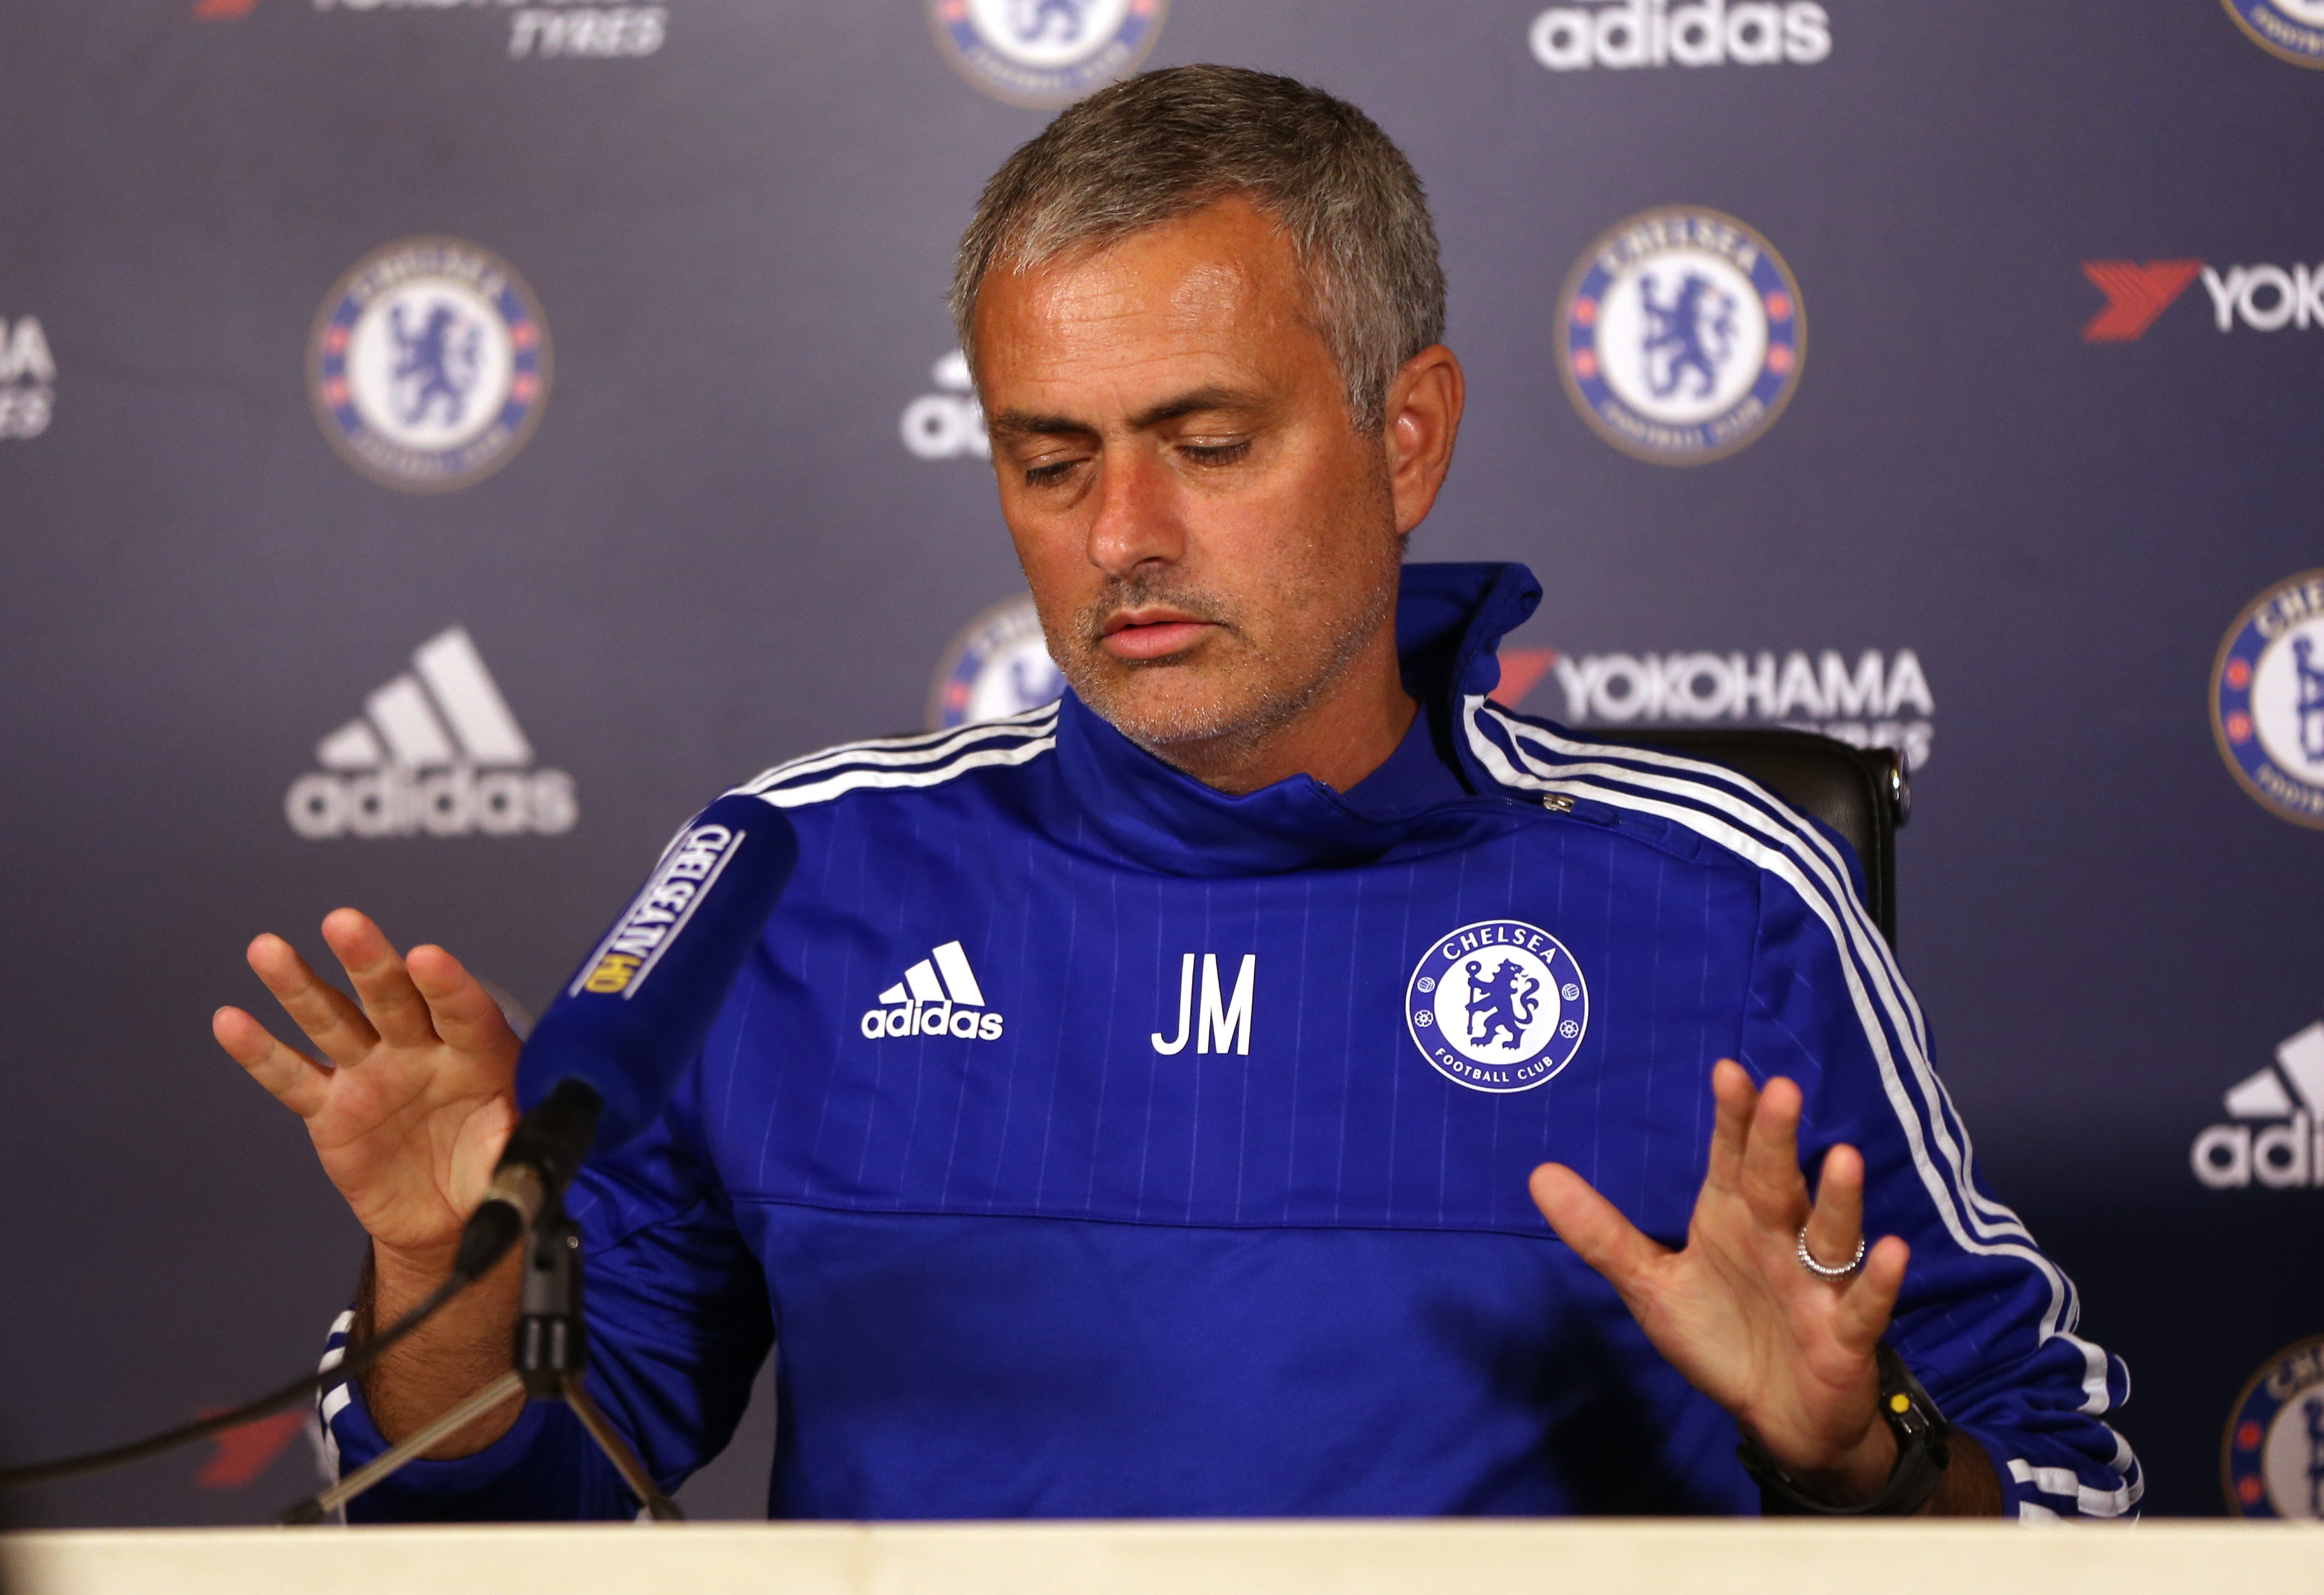 Football - Chelsea - Jose Mourinho Press Conference - Chelsea Training Ground - 2/10/15nChelsea Manager Jose Mourinho during press conferencenAction Images via Reuters / Alex MortonnLivepic